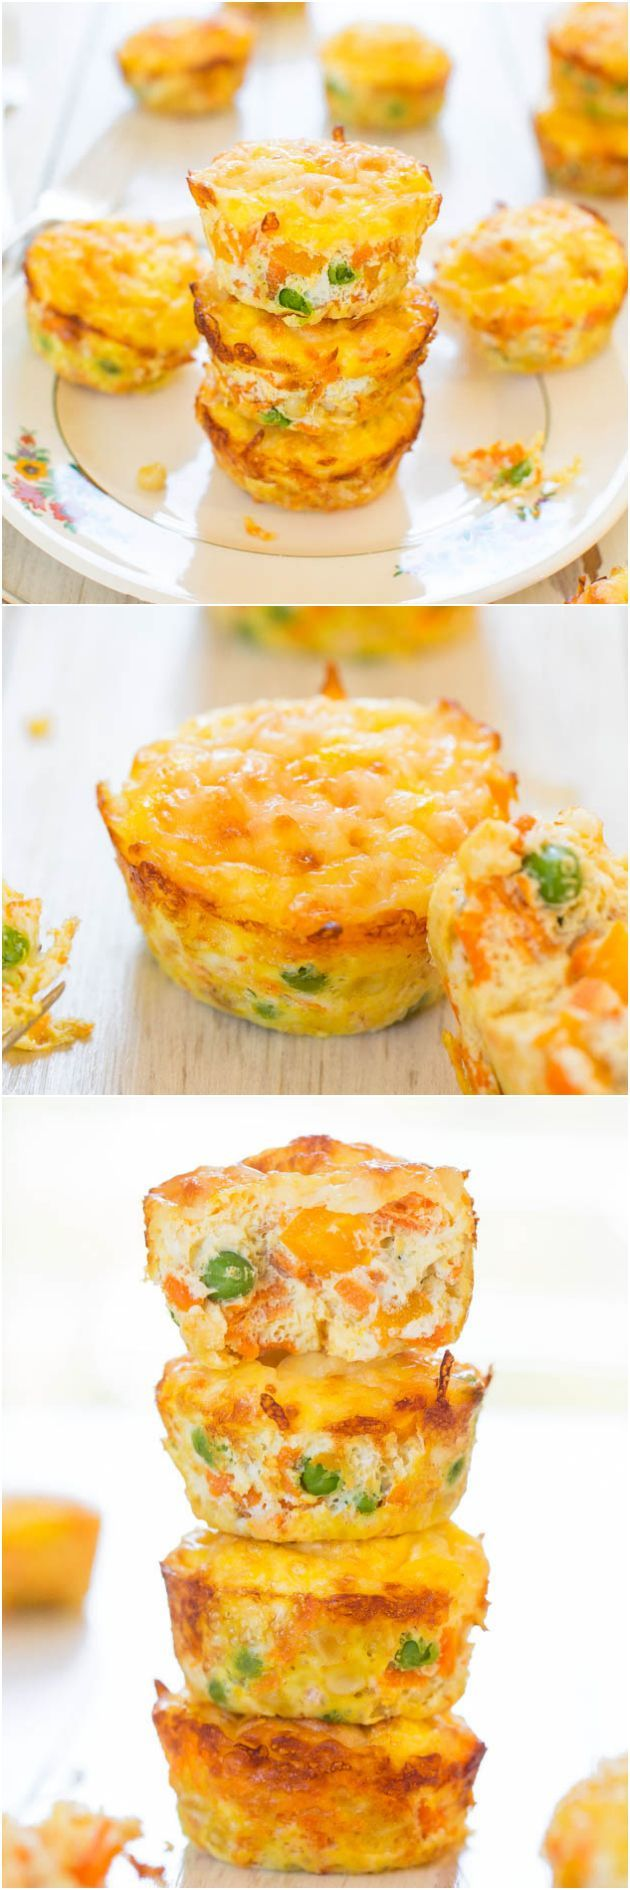 100-Calorie Cheese, Vegetable and Egg Muffins (GF) - Healthy, easy & only 100 calories! You'll want to keep a stash on hand! Great for #Easter, #MothersDay or #Brunch !